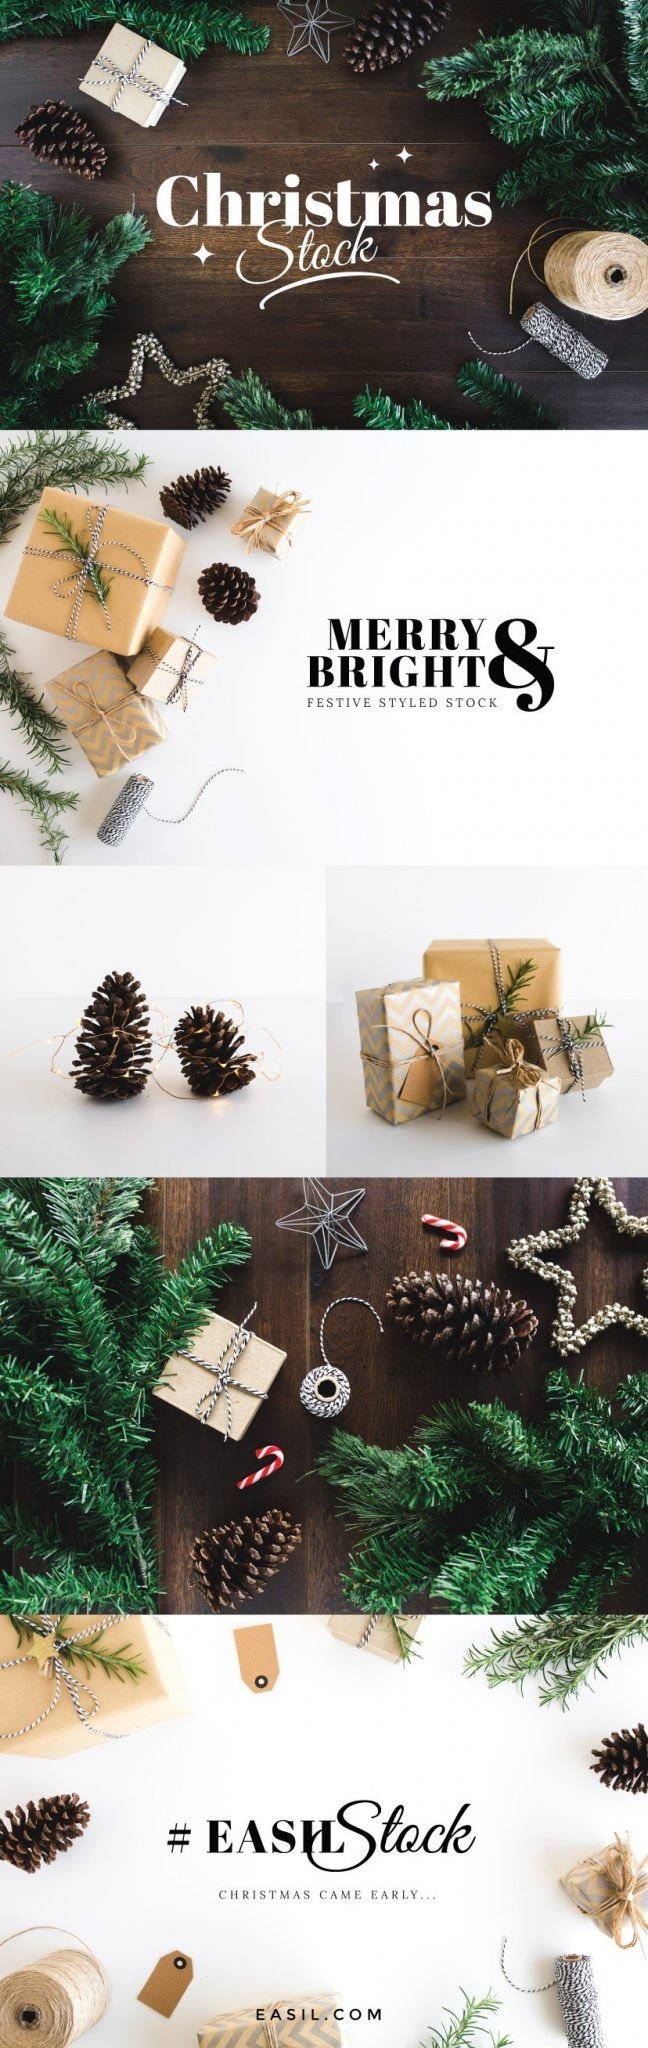 Festive Christmas styled stock photography for the holiday season